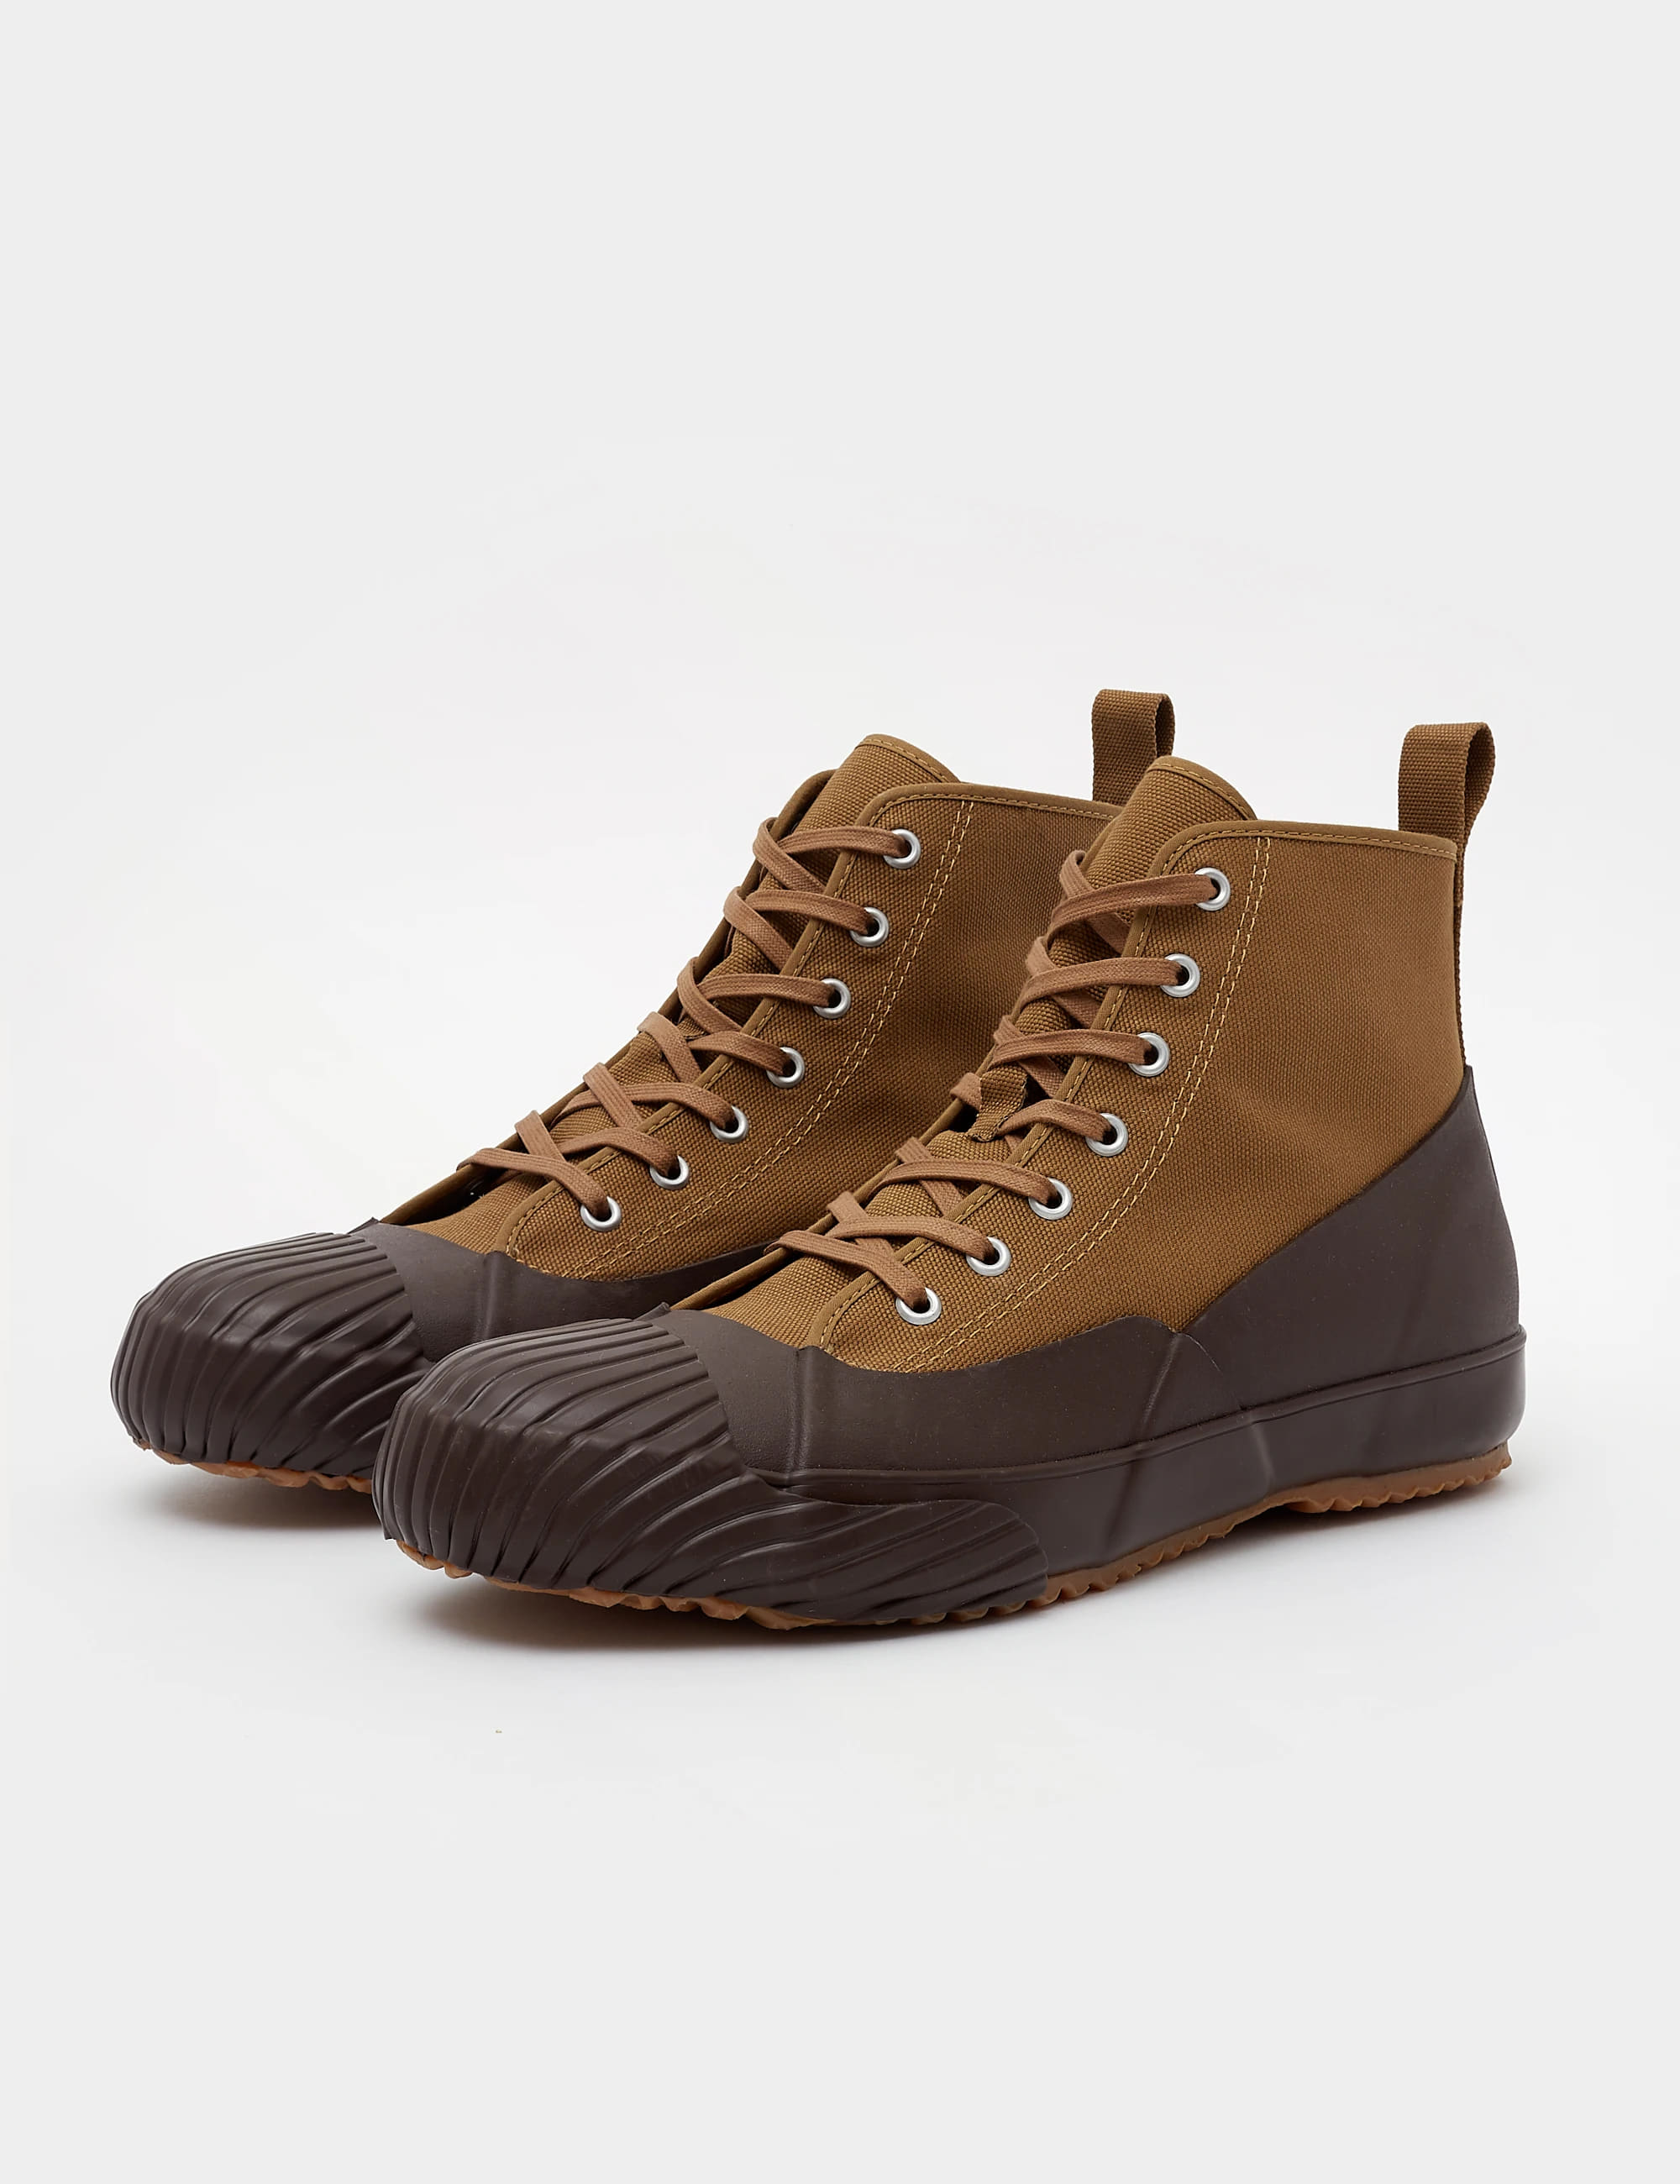 RAIN BOOT_CHOCOLATE ALMOND